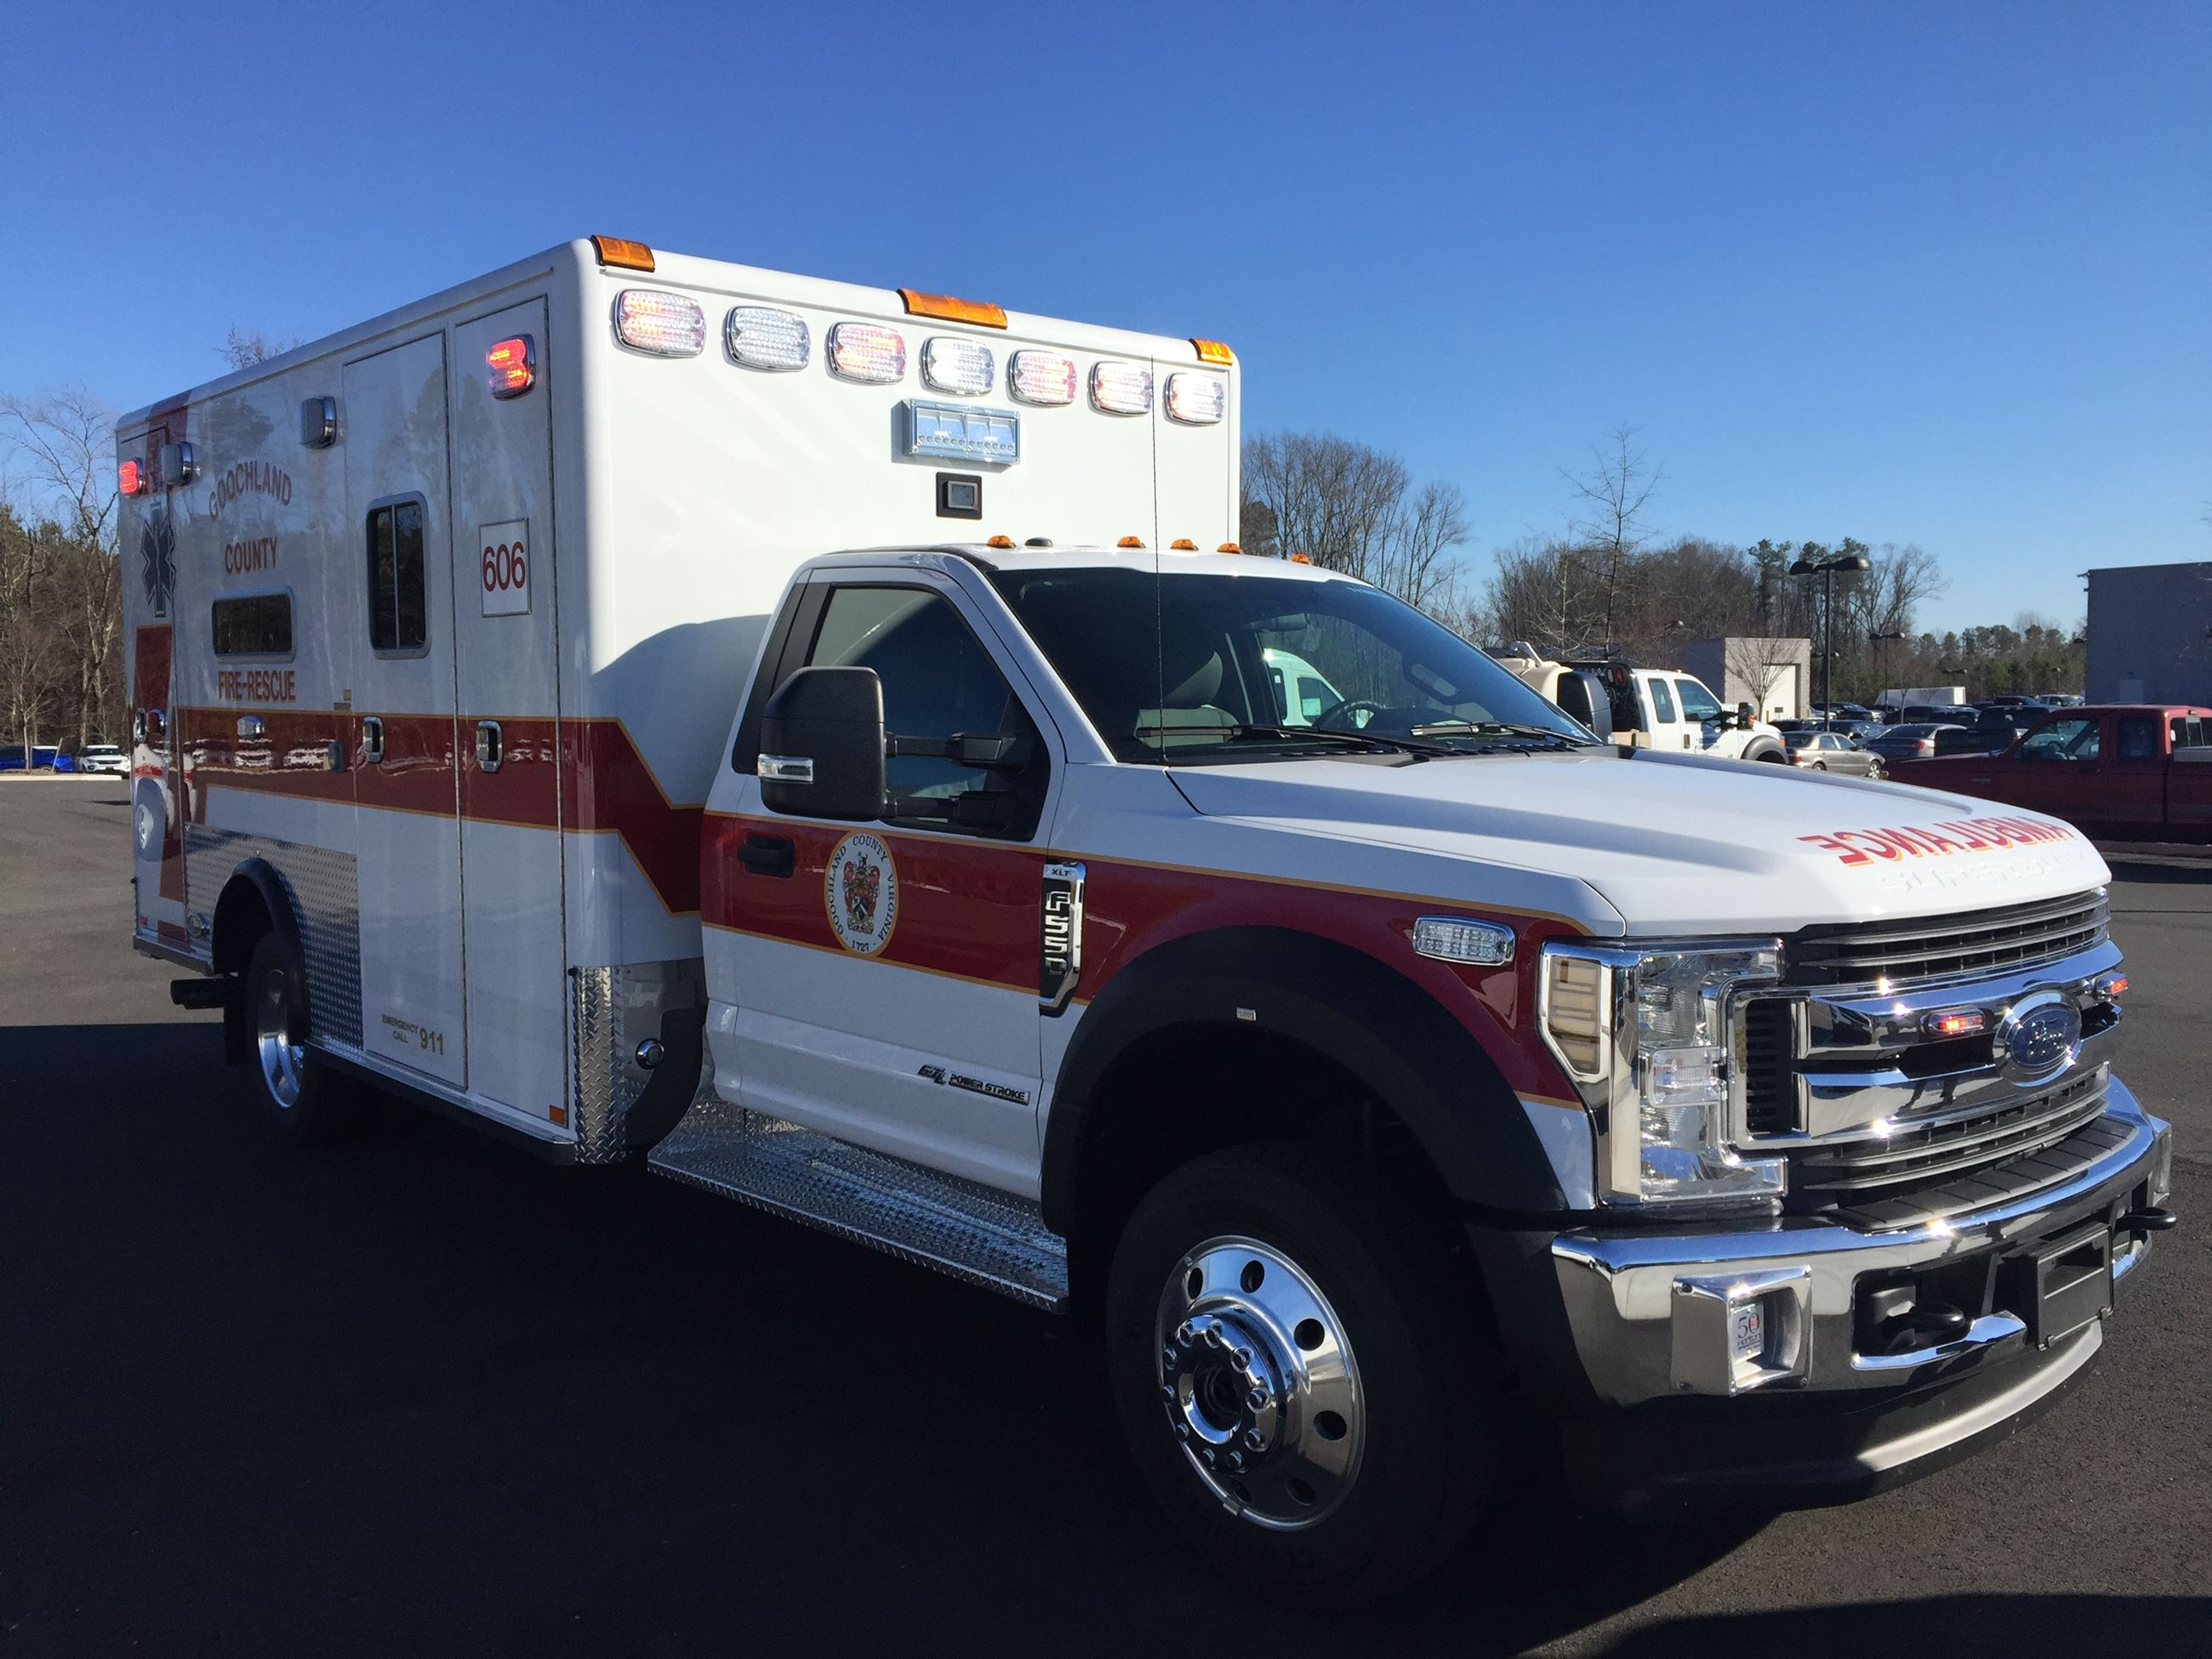 Goochland Fire-Rescue - Ambulance 606 - IMG_2256